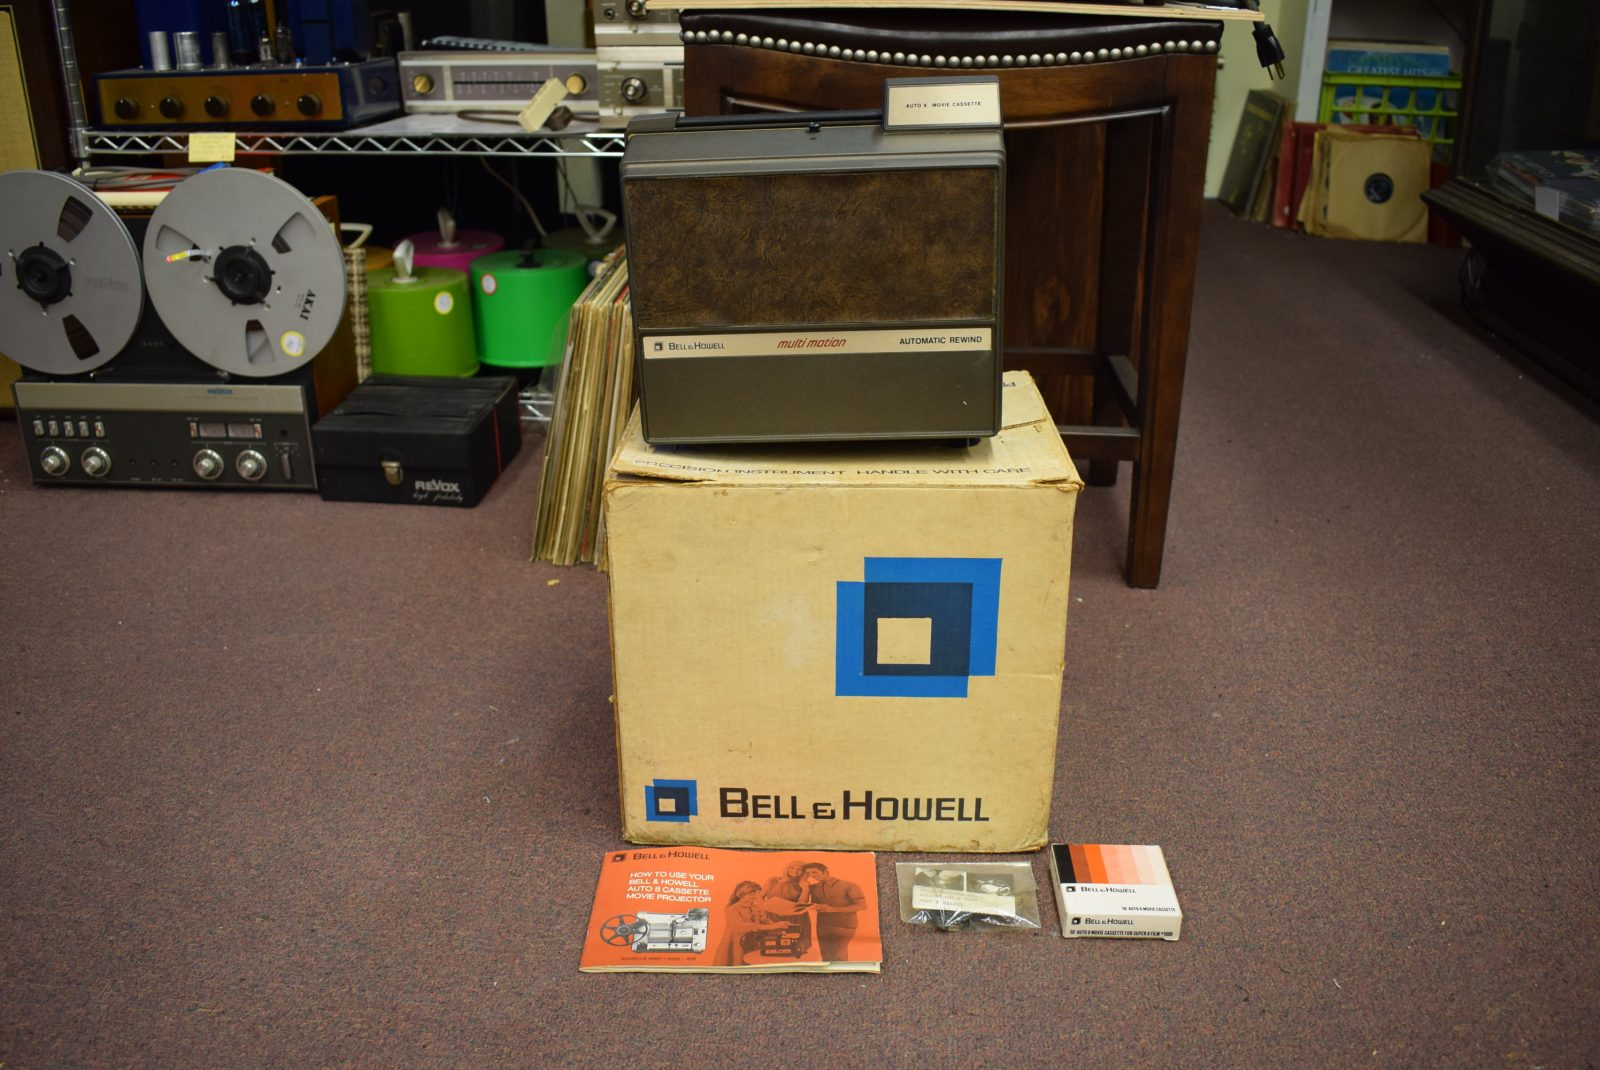 Bell & Howell 8 MM Projector - Model: 469A